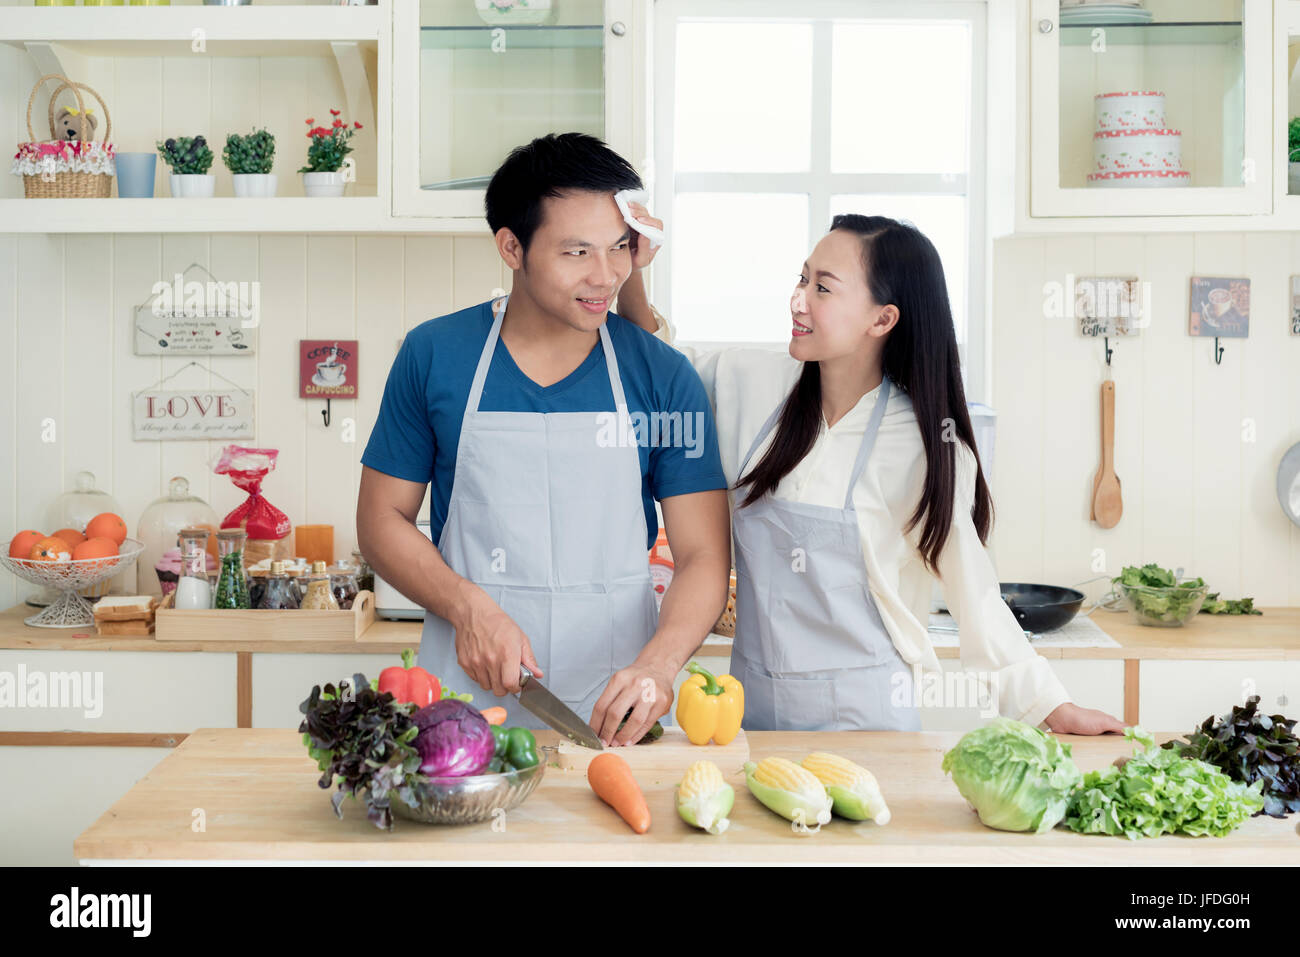 Asian beautiful young wife helping husband dry sweat off his face in kitchen at home. Happy love couple concept. - Stock Image